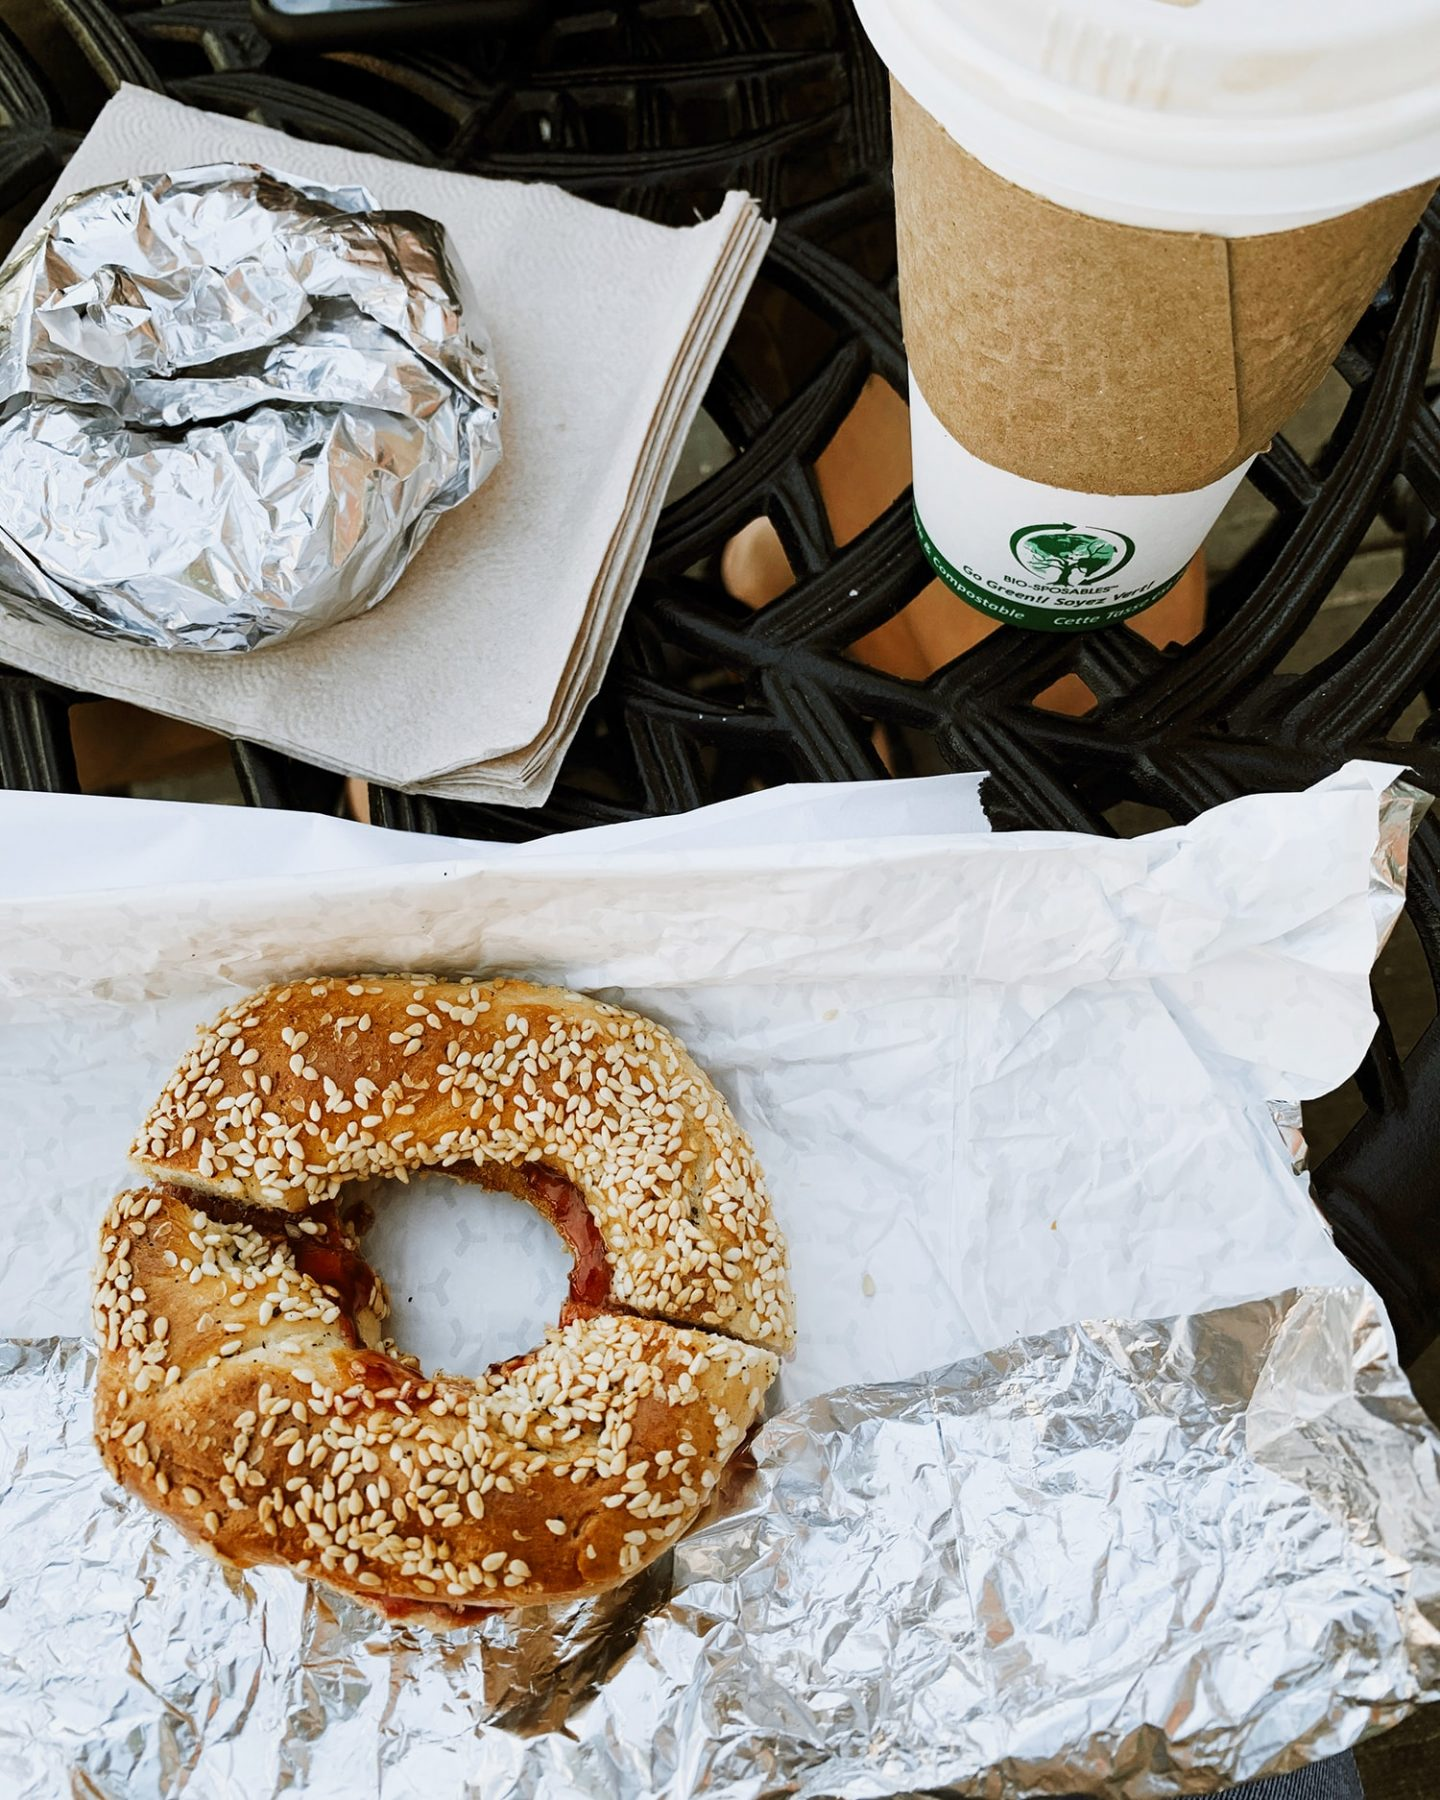 Montreal style bagels at The Bean Counter Café in Picton, Prince Edward County